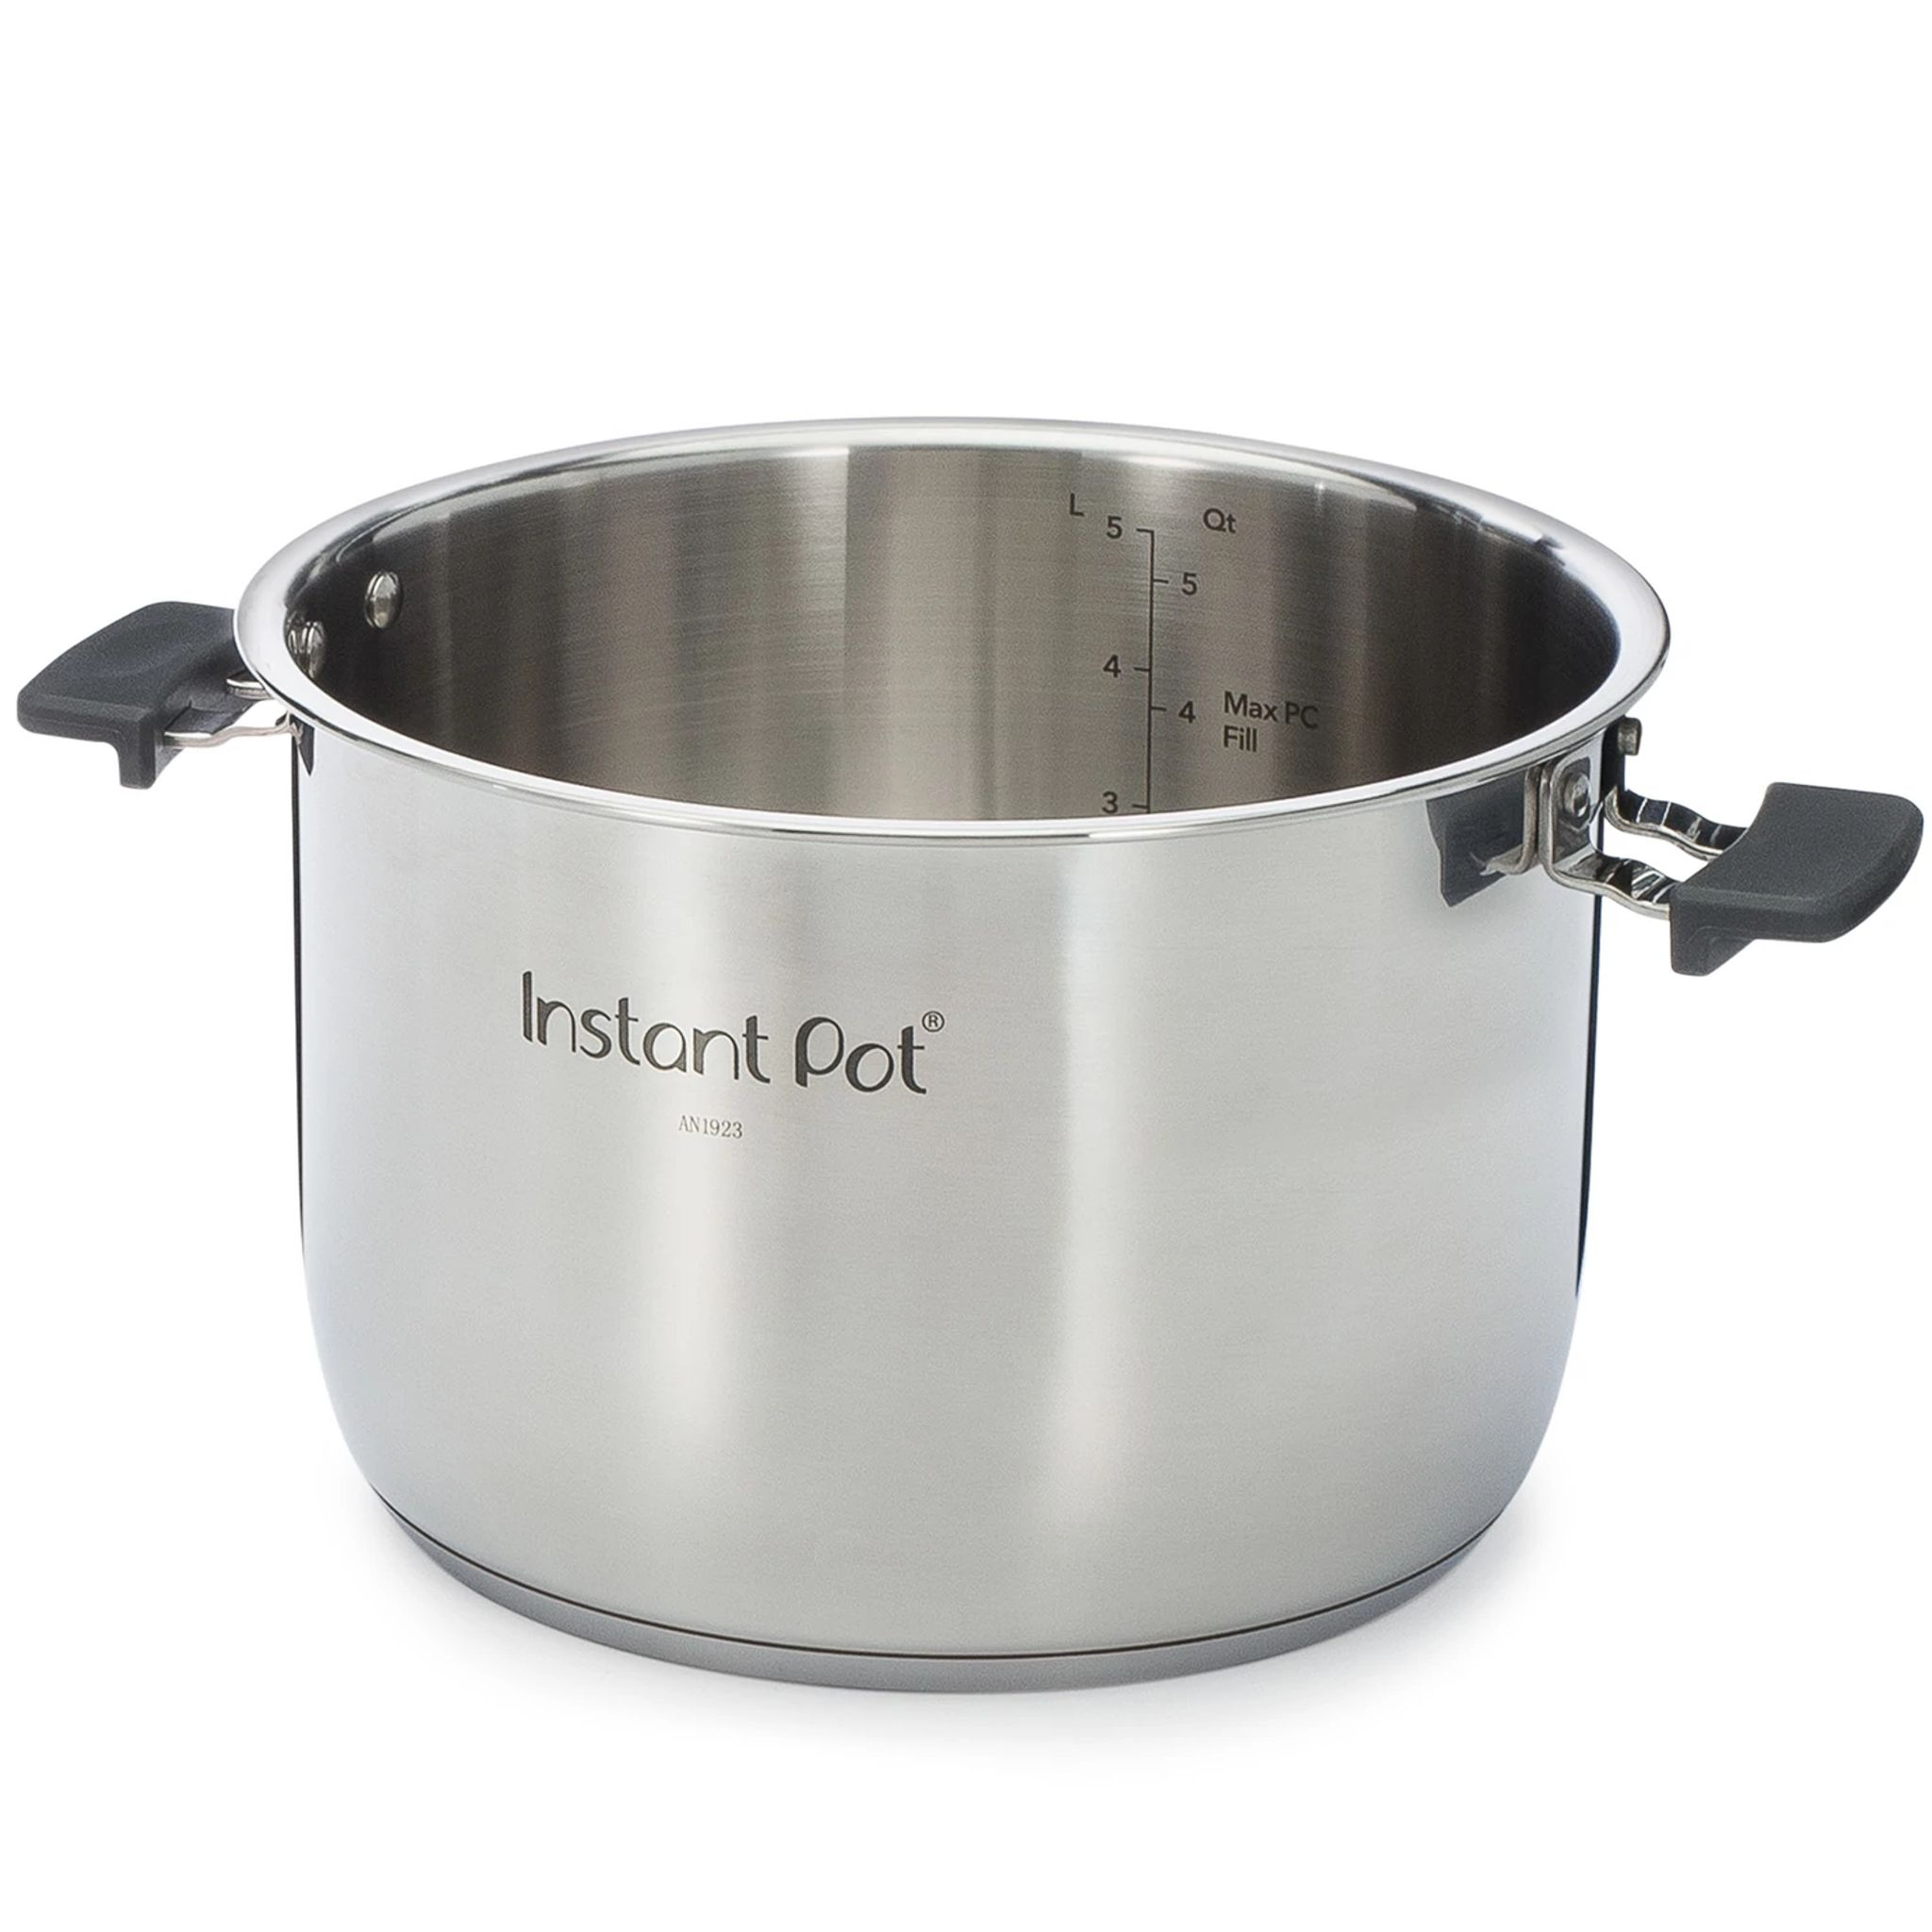 Instant Pot Evo Series 8-quart Stainless Steel Inner Pot with Handles